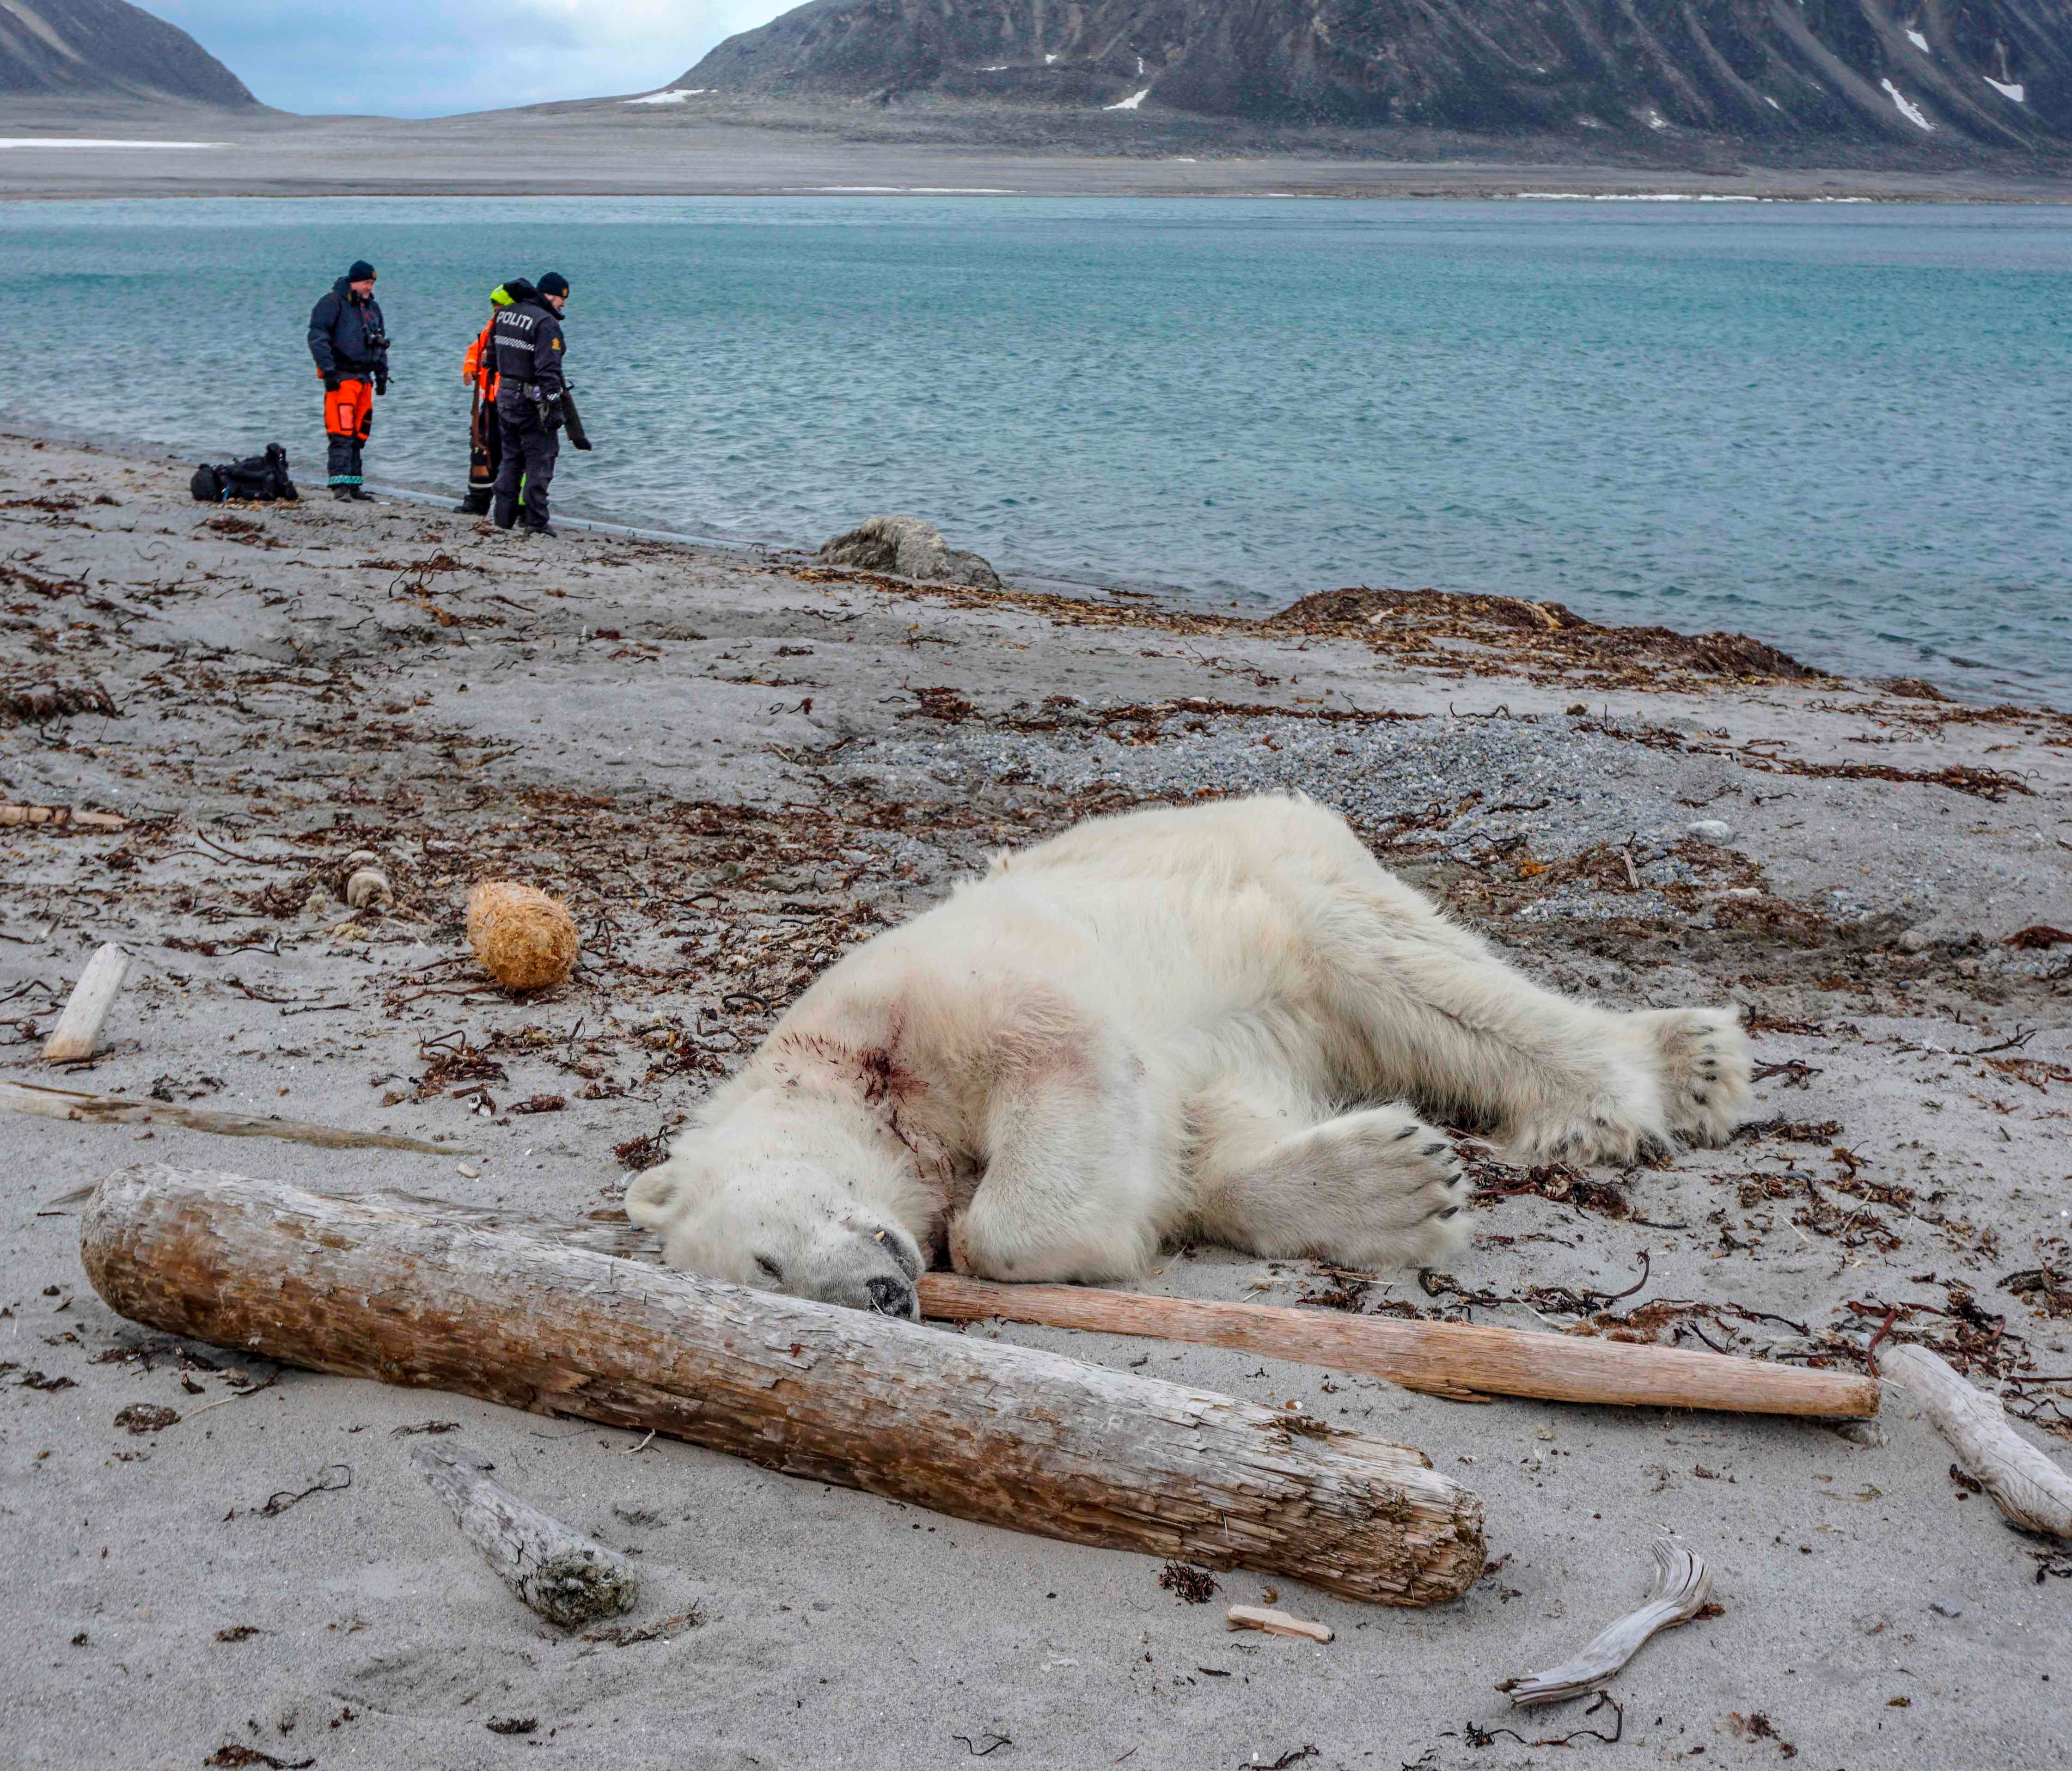 A dead polar bear lays at the beach at Sjuøyane north of Spitzbergen, Norway, on July 28, 2018.  Norwegian authorities said the polar bear attacked and injured a crew member of the